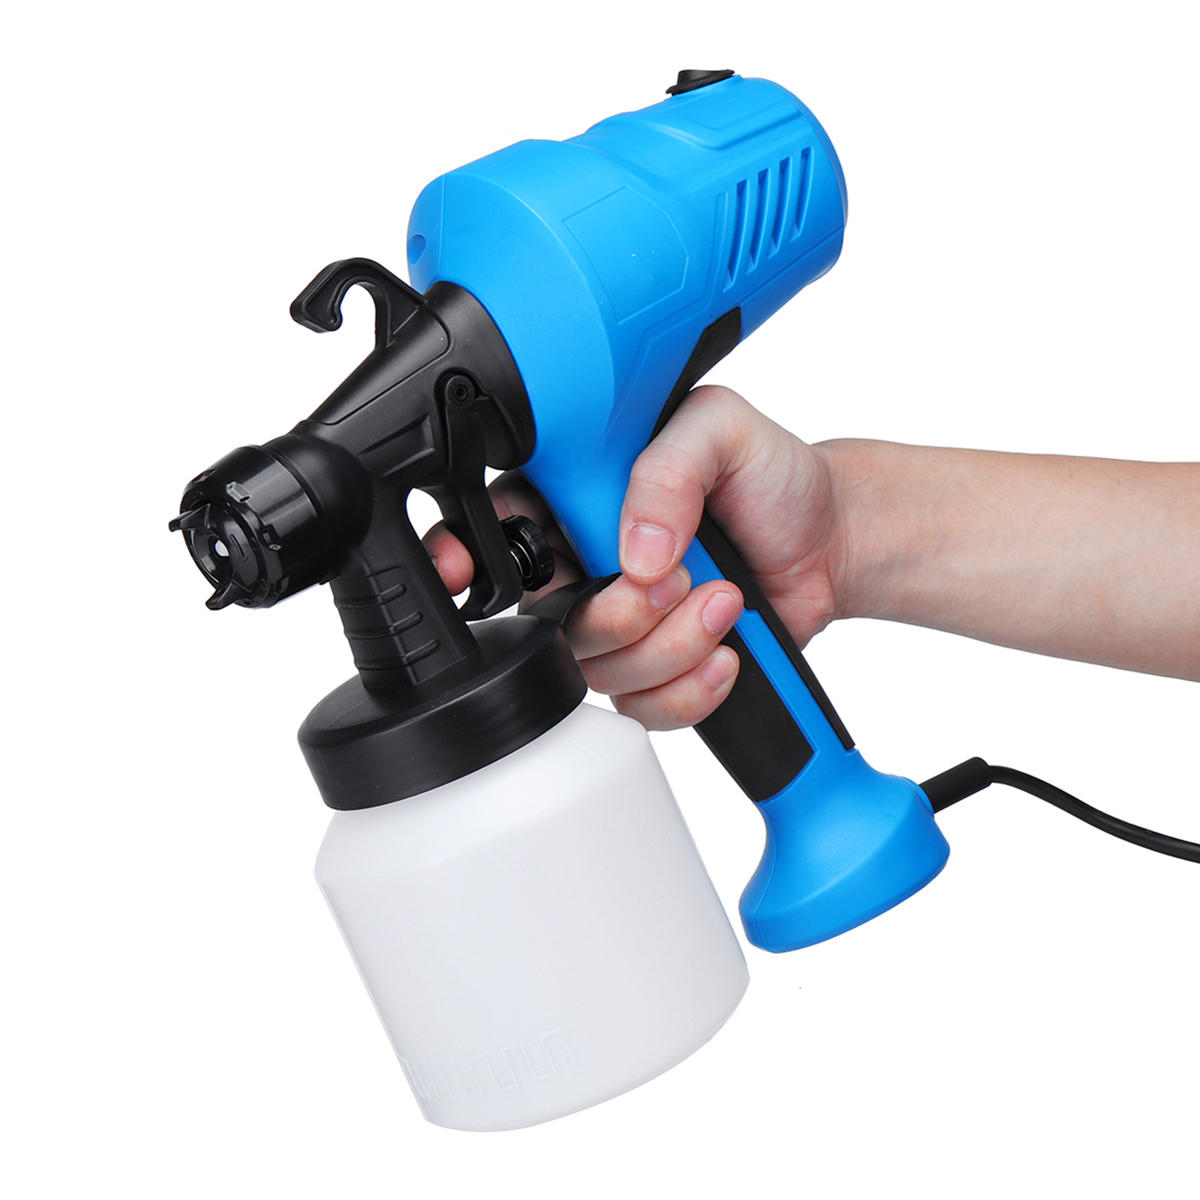 600CC 1.4mm HVLP Air Spray Gun Tool Automotive Shop Painting Tools with Gauge - 9